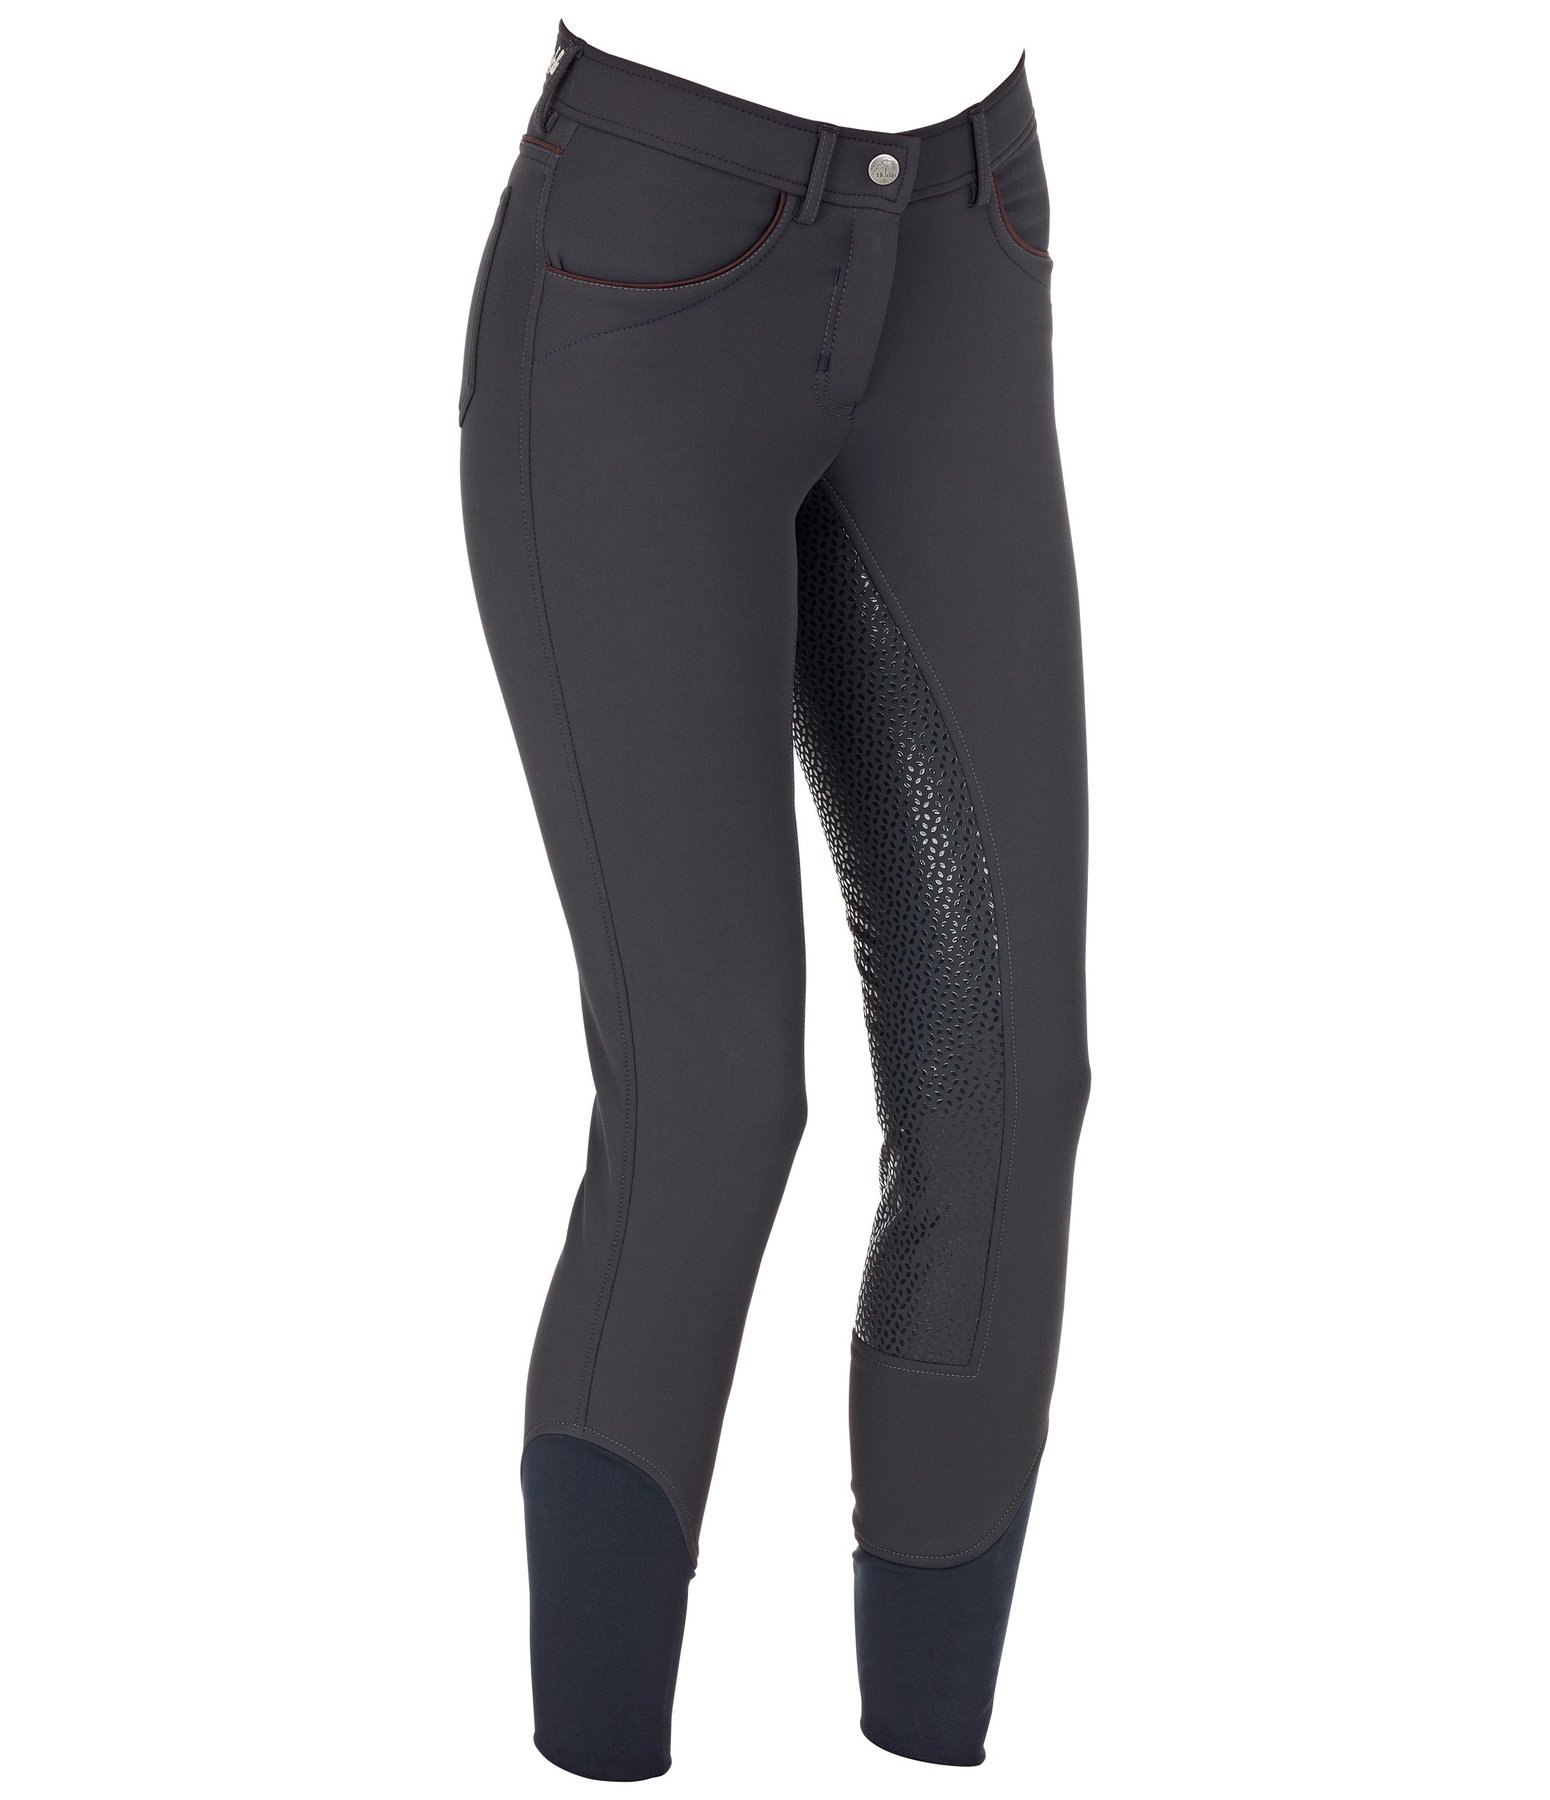 Pantalon d'équitation softshell Full-Grip  Carolina